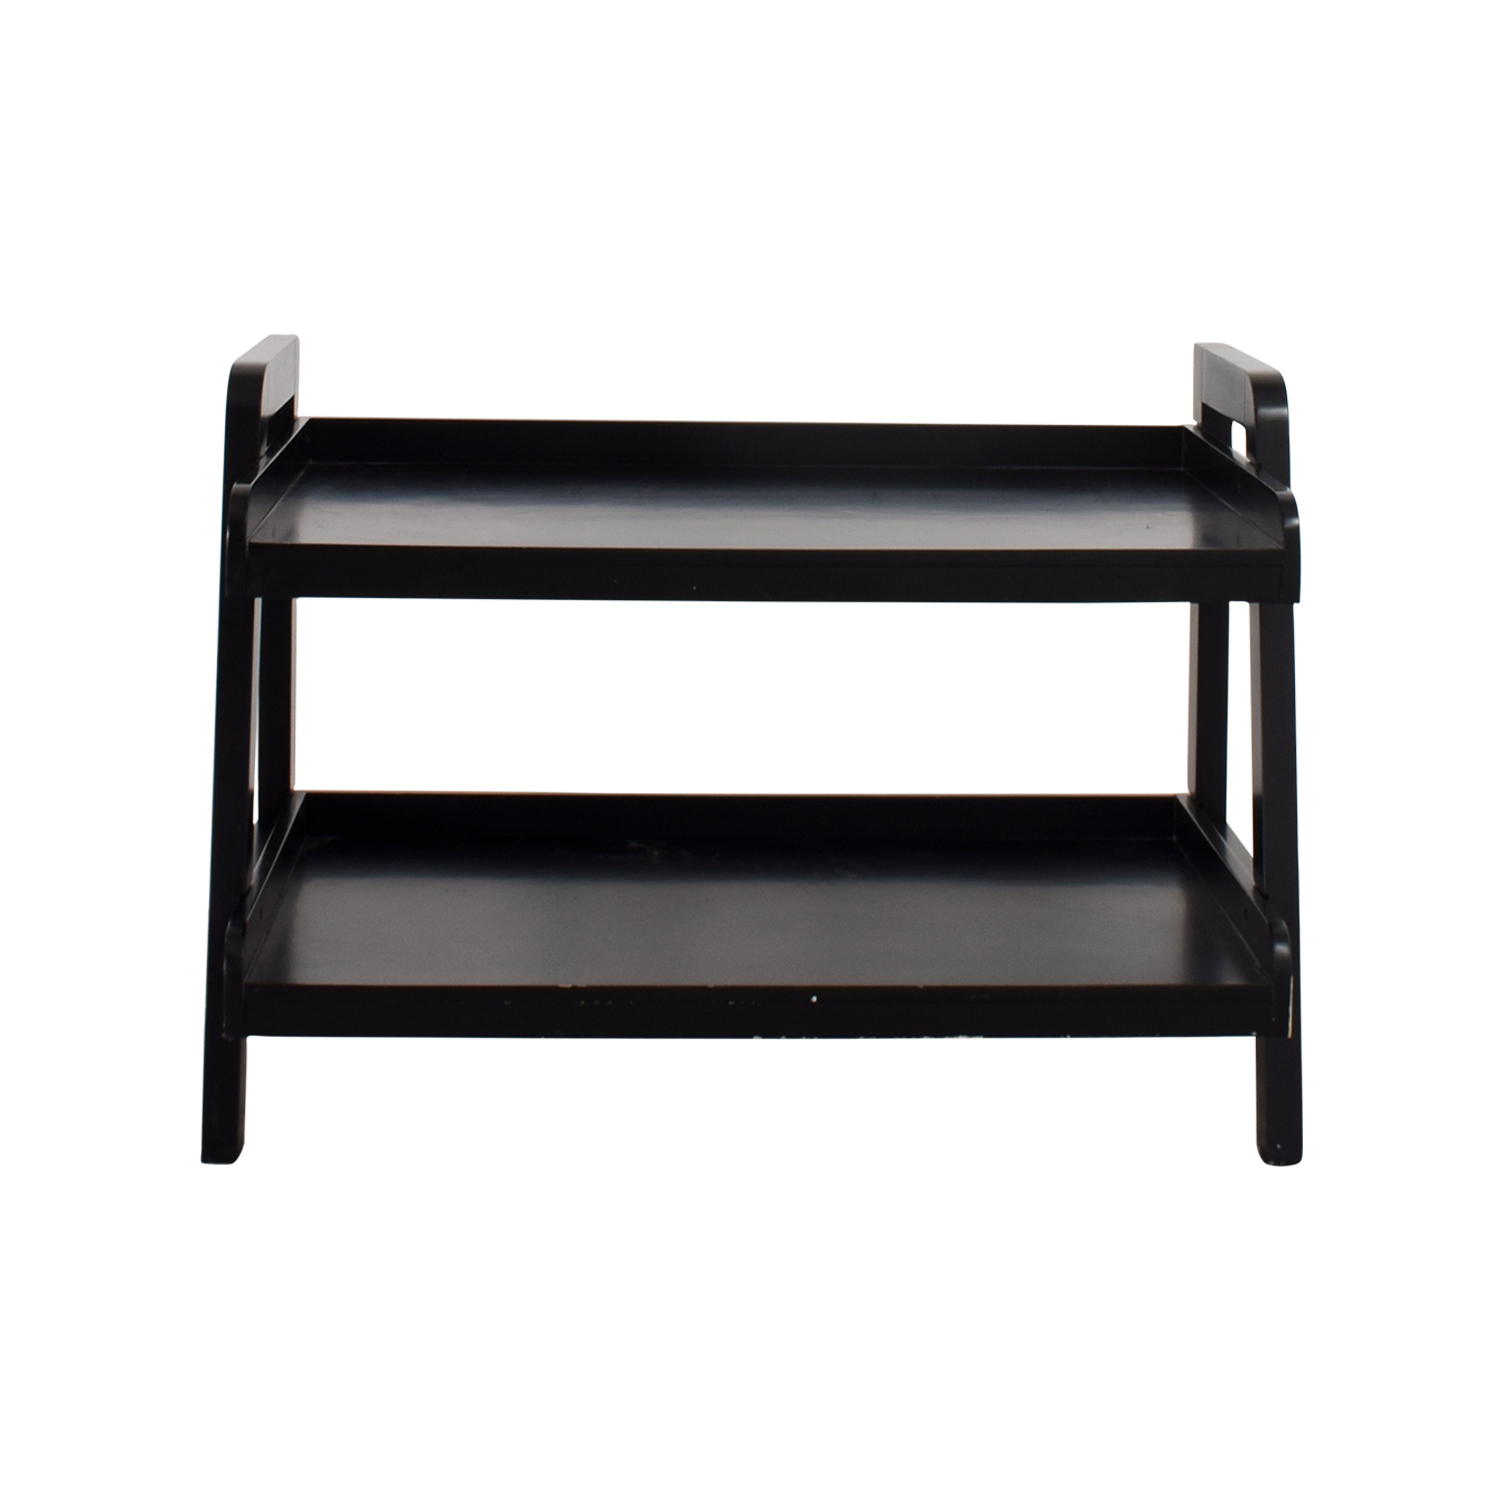 Pottery Barn Pottery Barn Black TV Stand dimensions